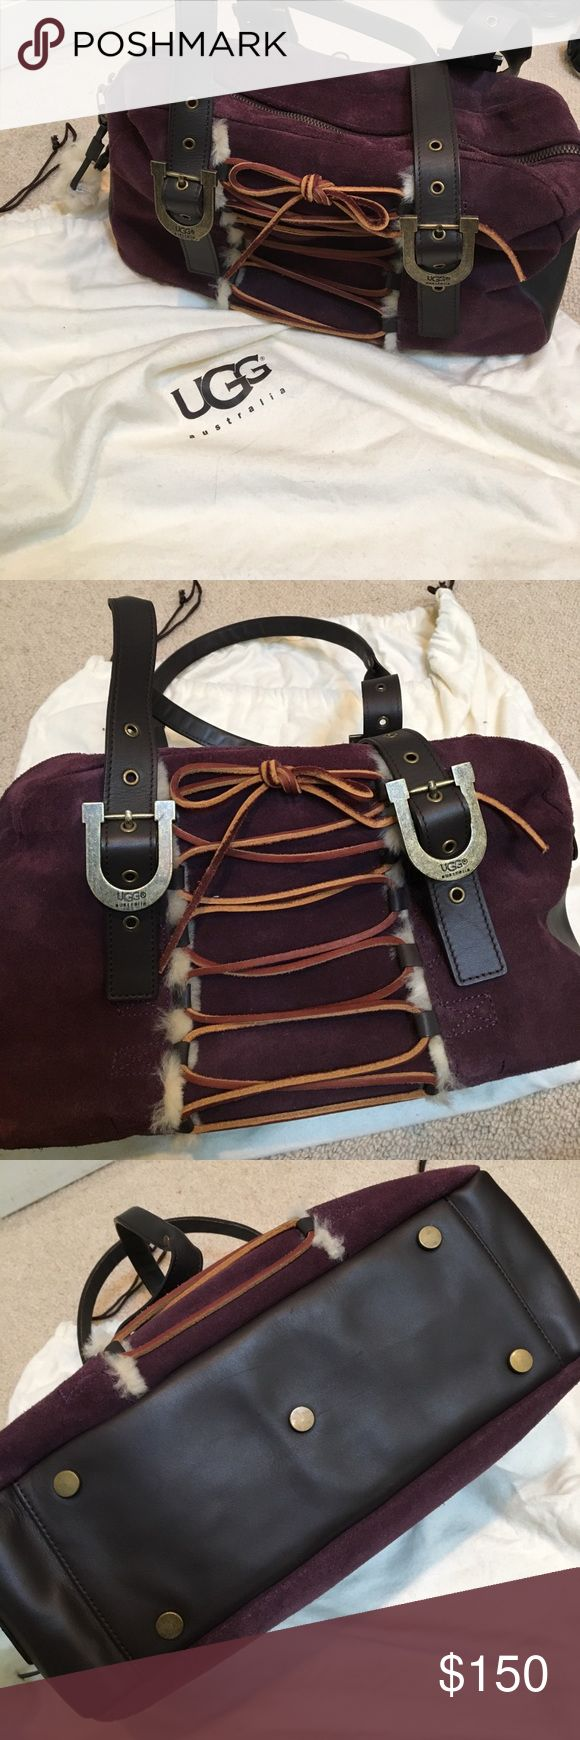 Beautiful UGG Australia Purse Amazing ugg Australia Purse. Used once and in perfect condition. Will not part unless for the right price. Will come in dust bag. 100% authentic, purchased by me at the San Francisco UGG store. UGG Bags